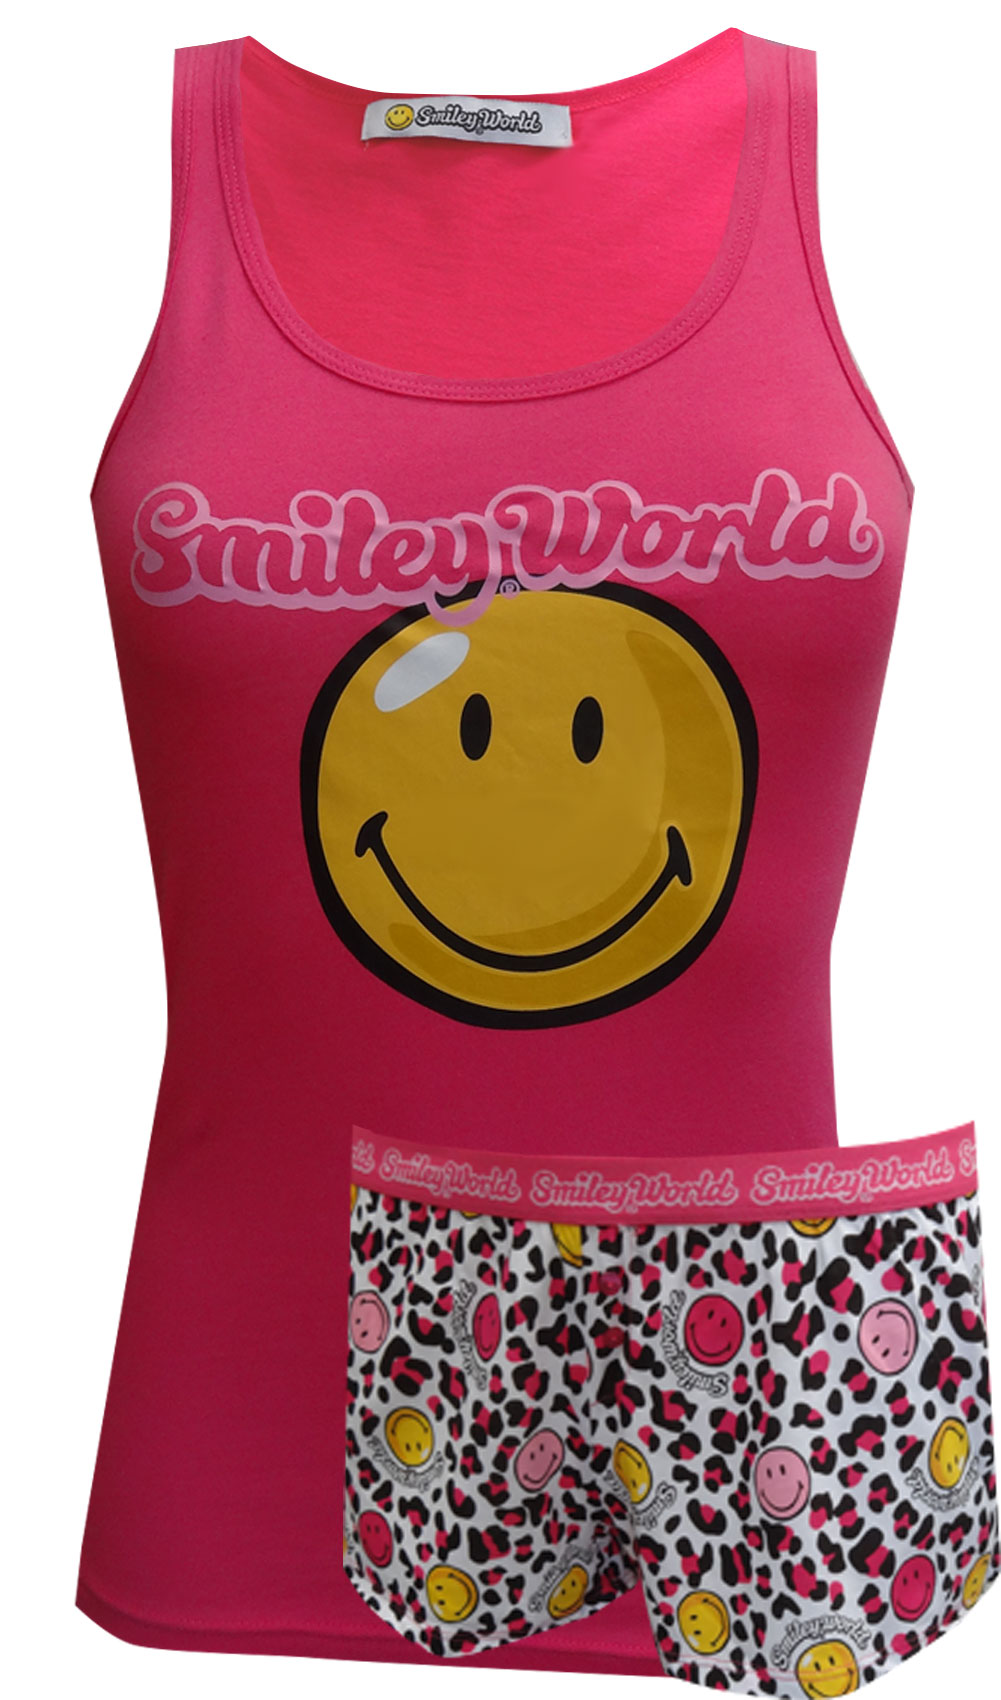 Smiley World Animal Print Shortie Pajama Set for women